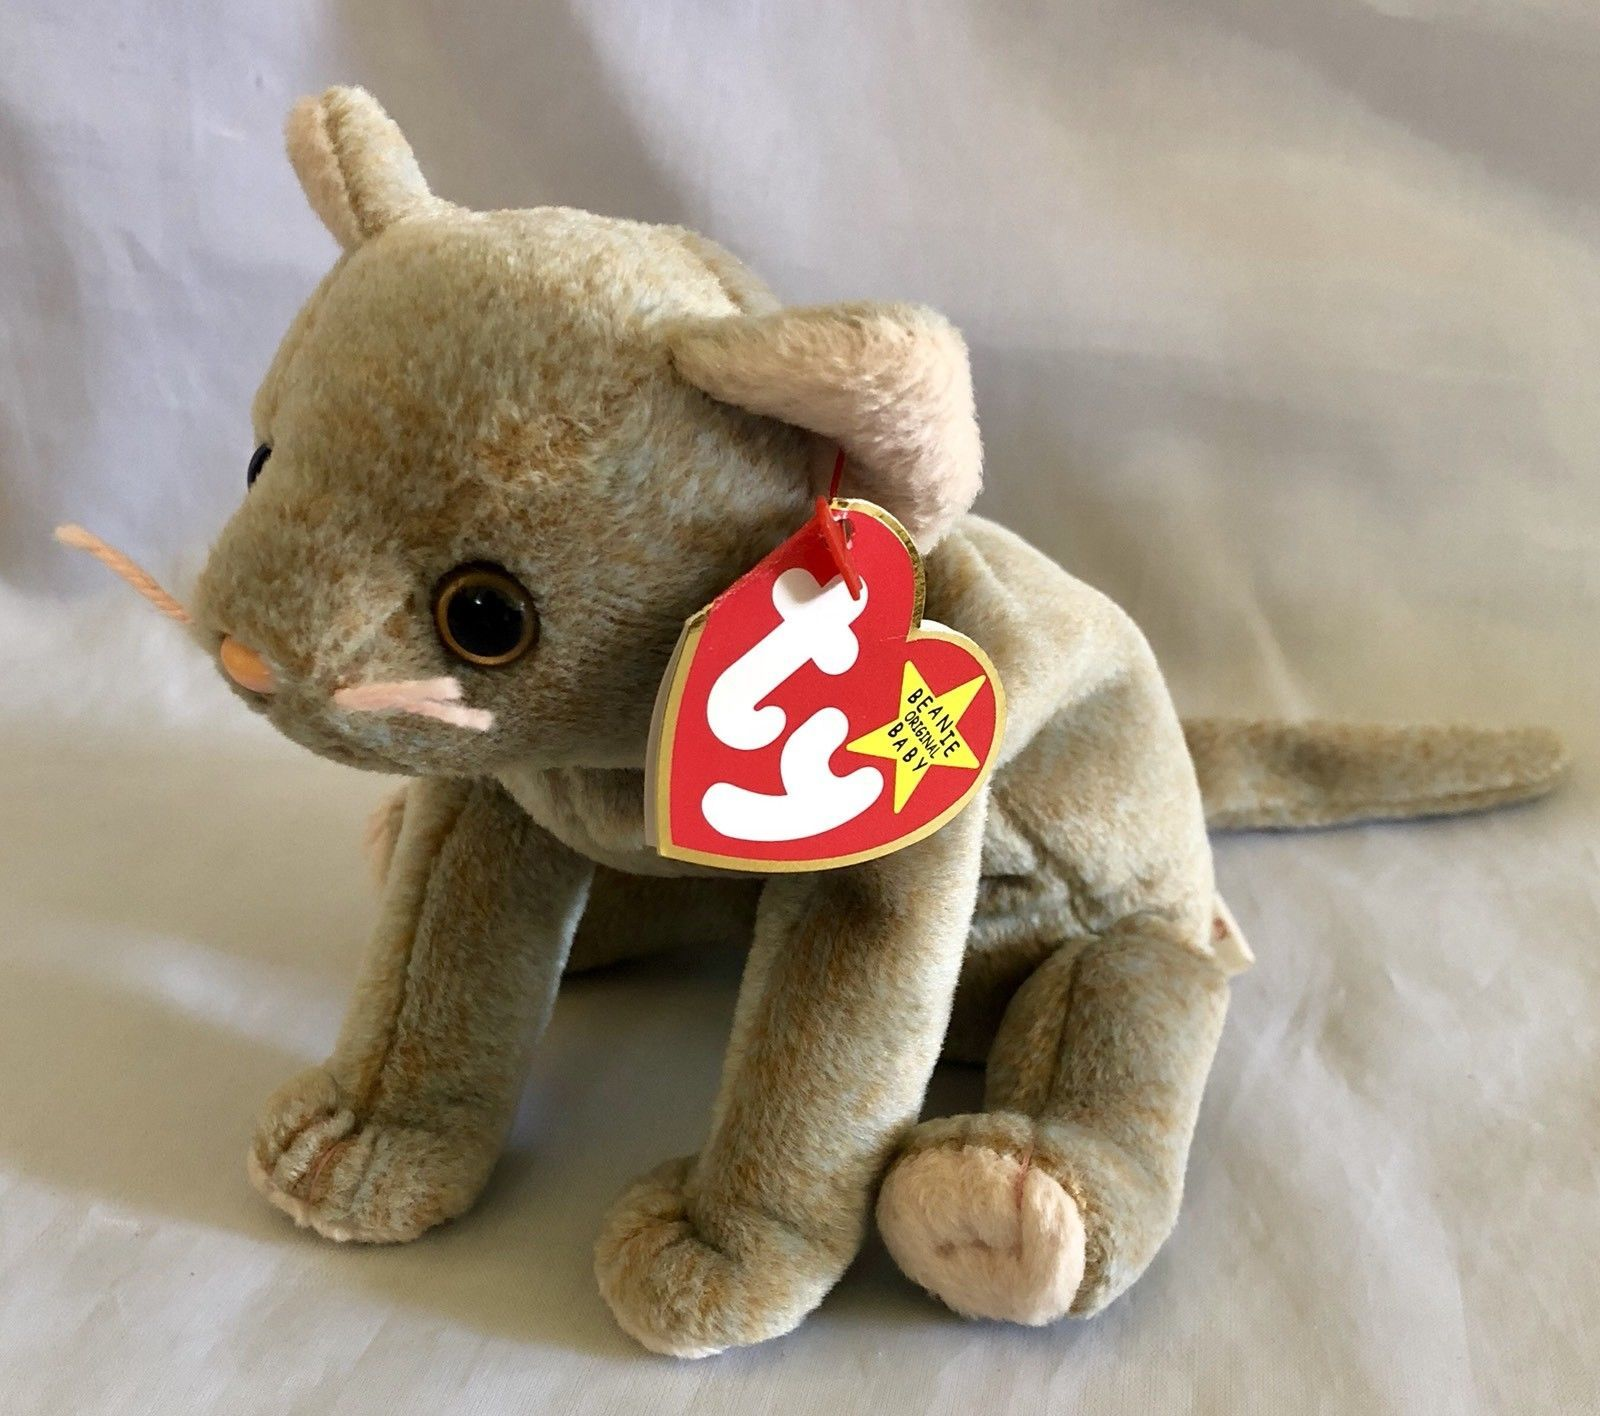 Scat the Cat - Ty Beanie Baby - MWMT - and 23 similar items 5e80e7ece312